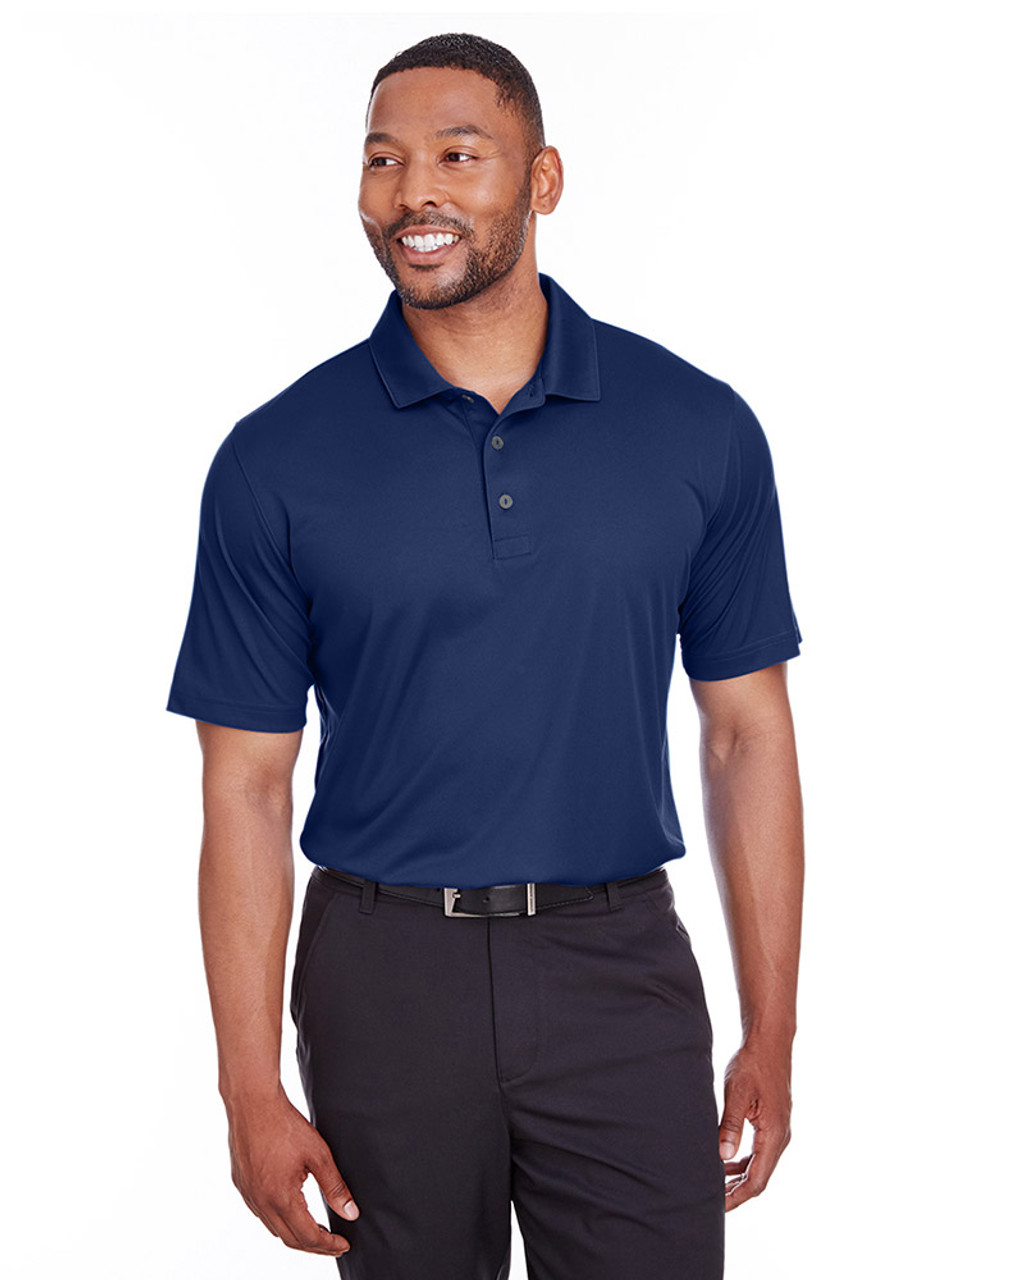 Peacoat - 596799 Puma Golf Men's Icon Golf Polo | Blankclothing.ca